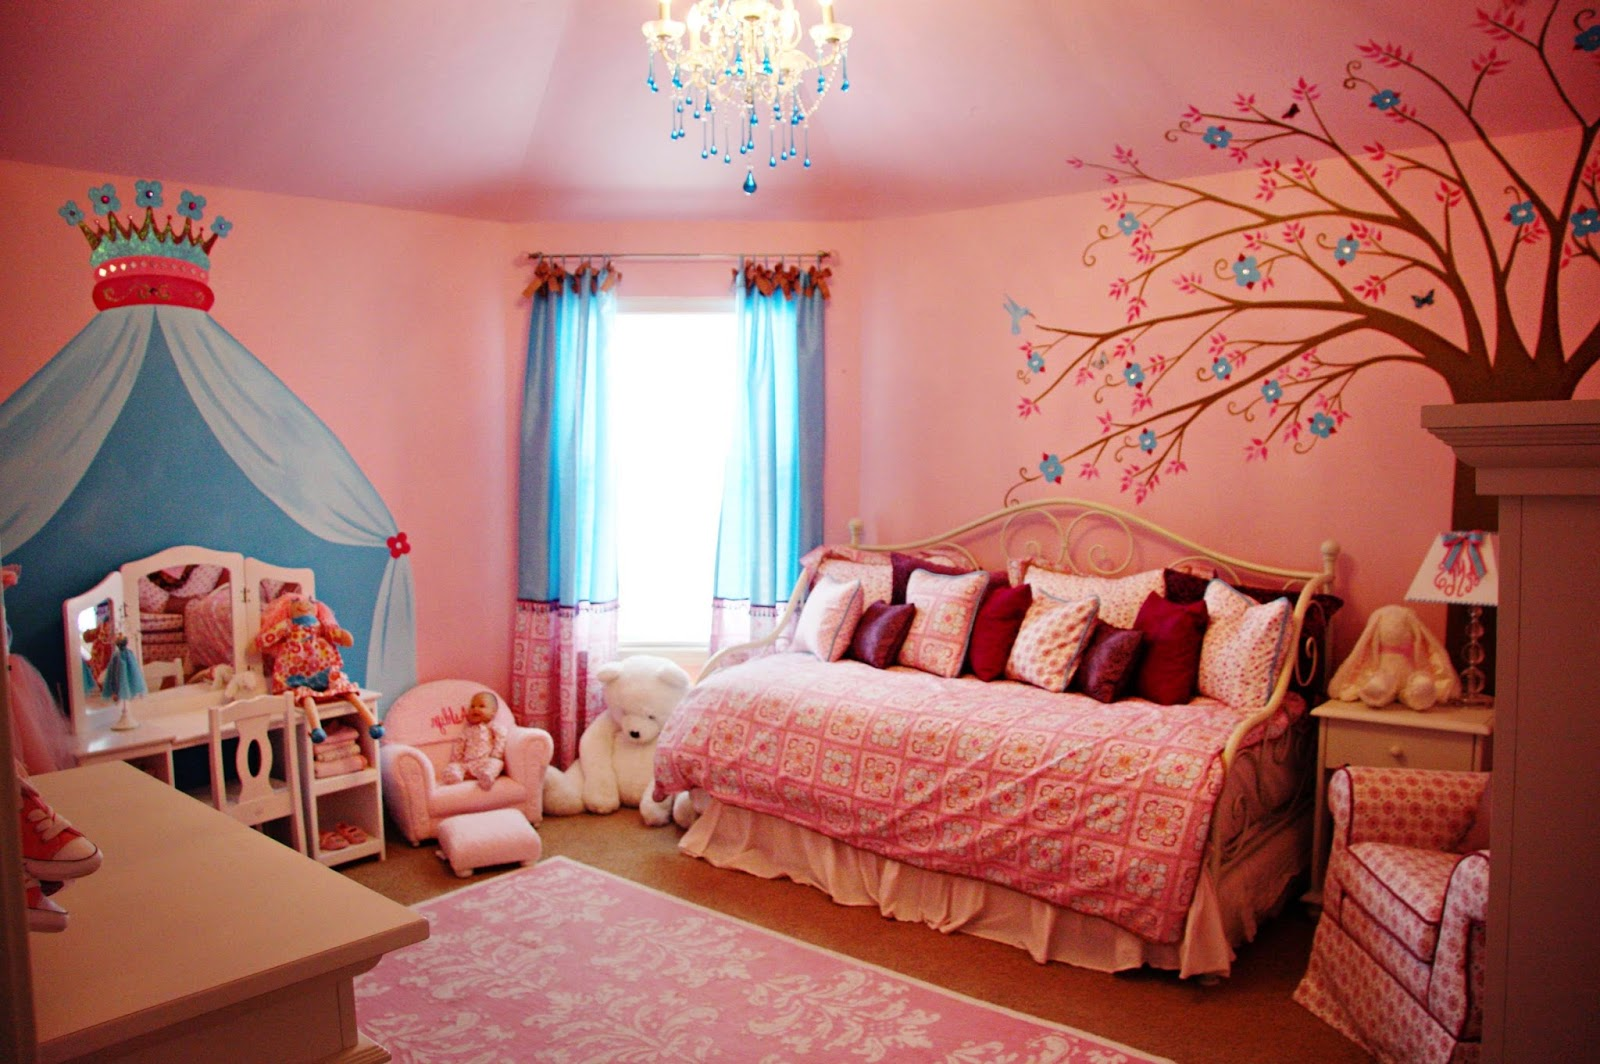 cool colors paint room dream bedroom teen girl room ideas dream